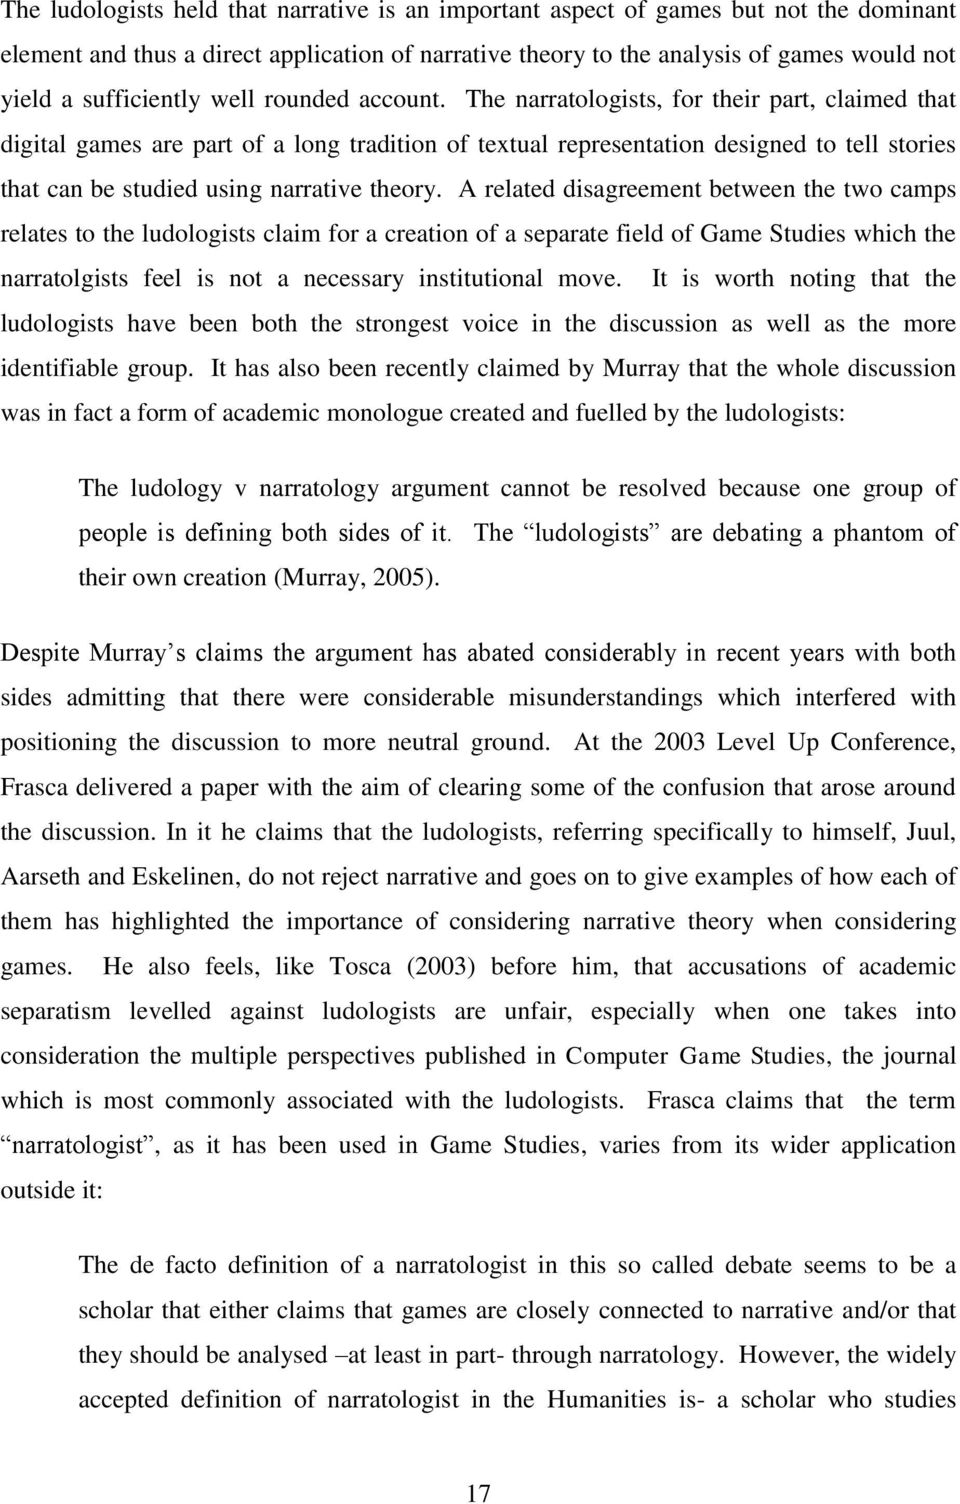 The narratologists, for their part, claimed that digital games are part of a long tradition of textual representation designed to tell stories that can be studied using narrative theory.